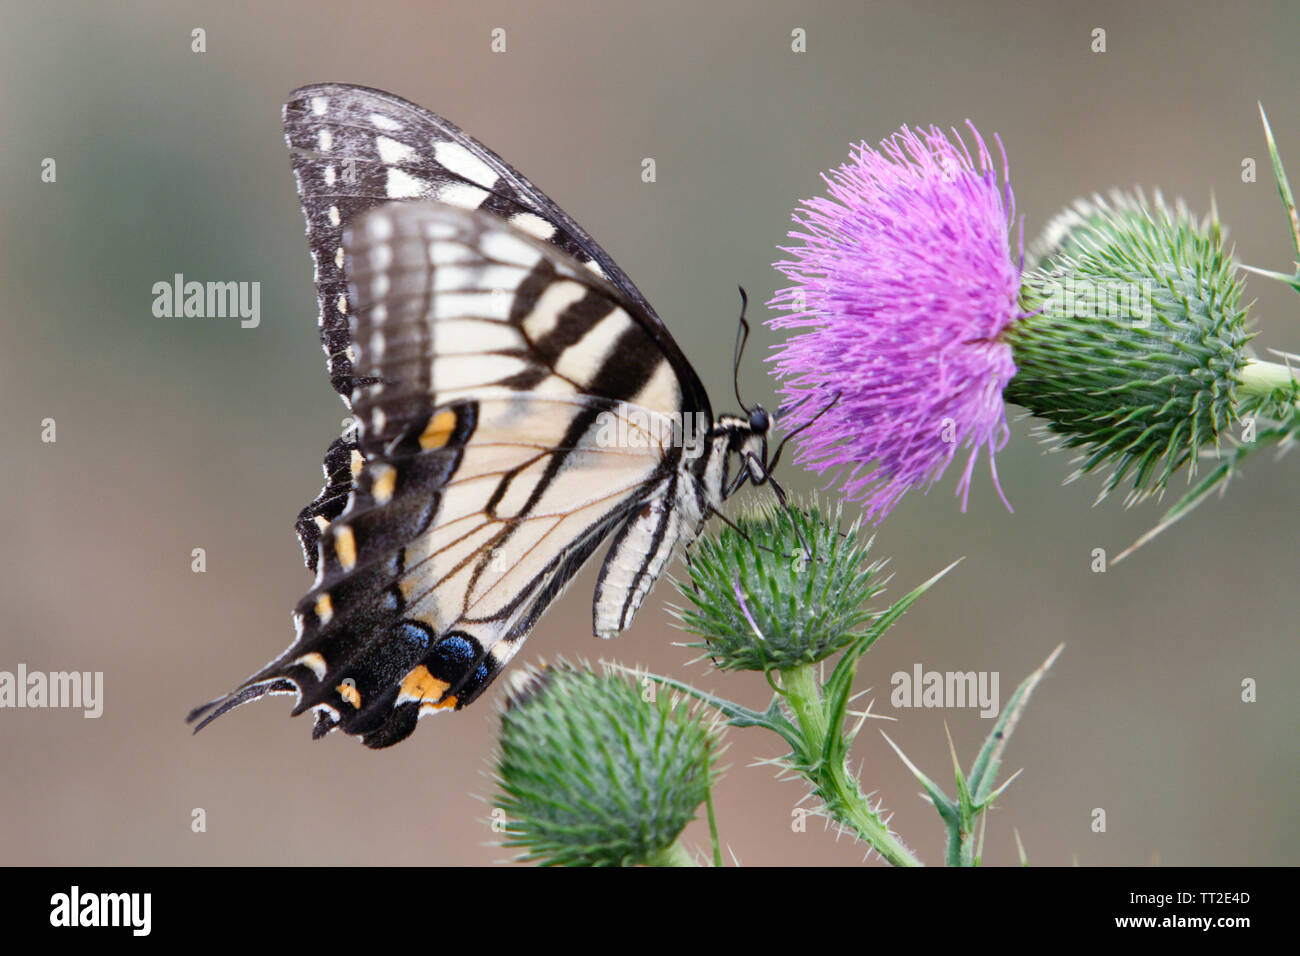 Swallowtail Butterfly Close up View on a Bull Thistle Stock Photo